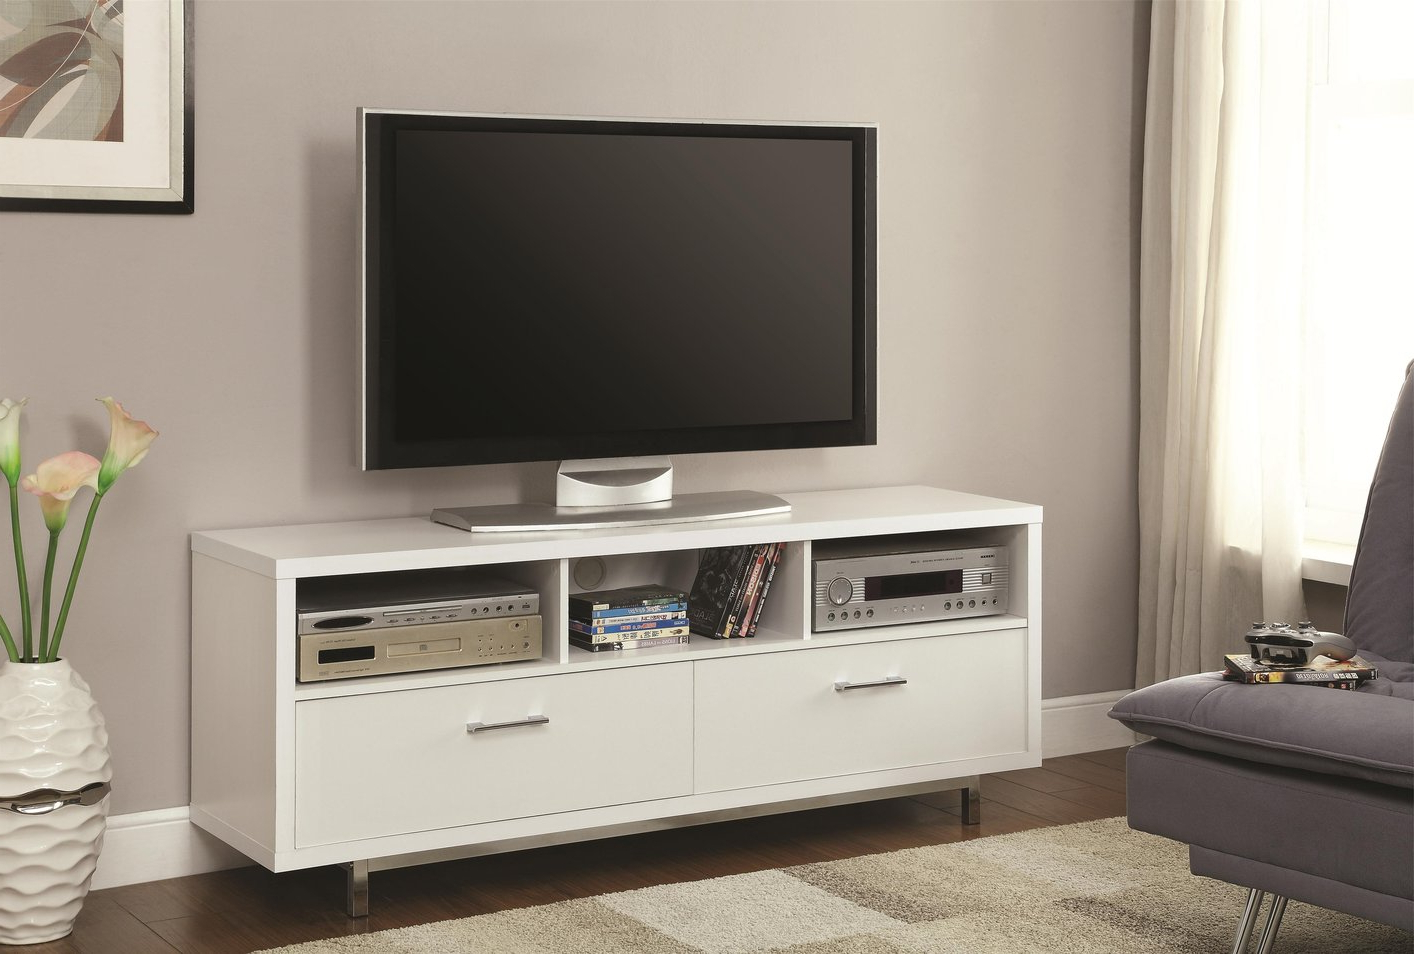 White Wood Tv Stand – Steal A Sofa Furniture Outlet Los Angeles Ca Throughout Well Liked White And Wood Tv Stands (View 4 of 20)